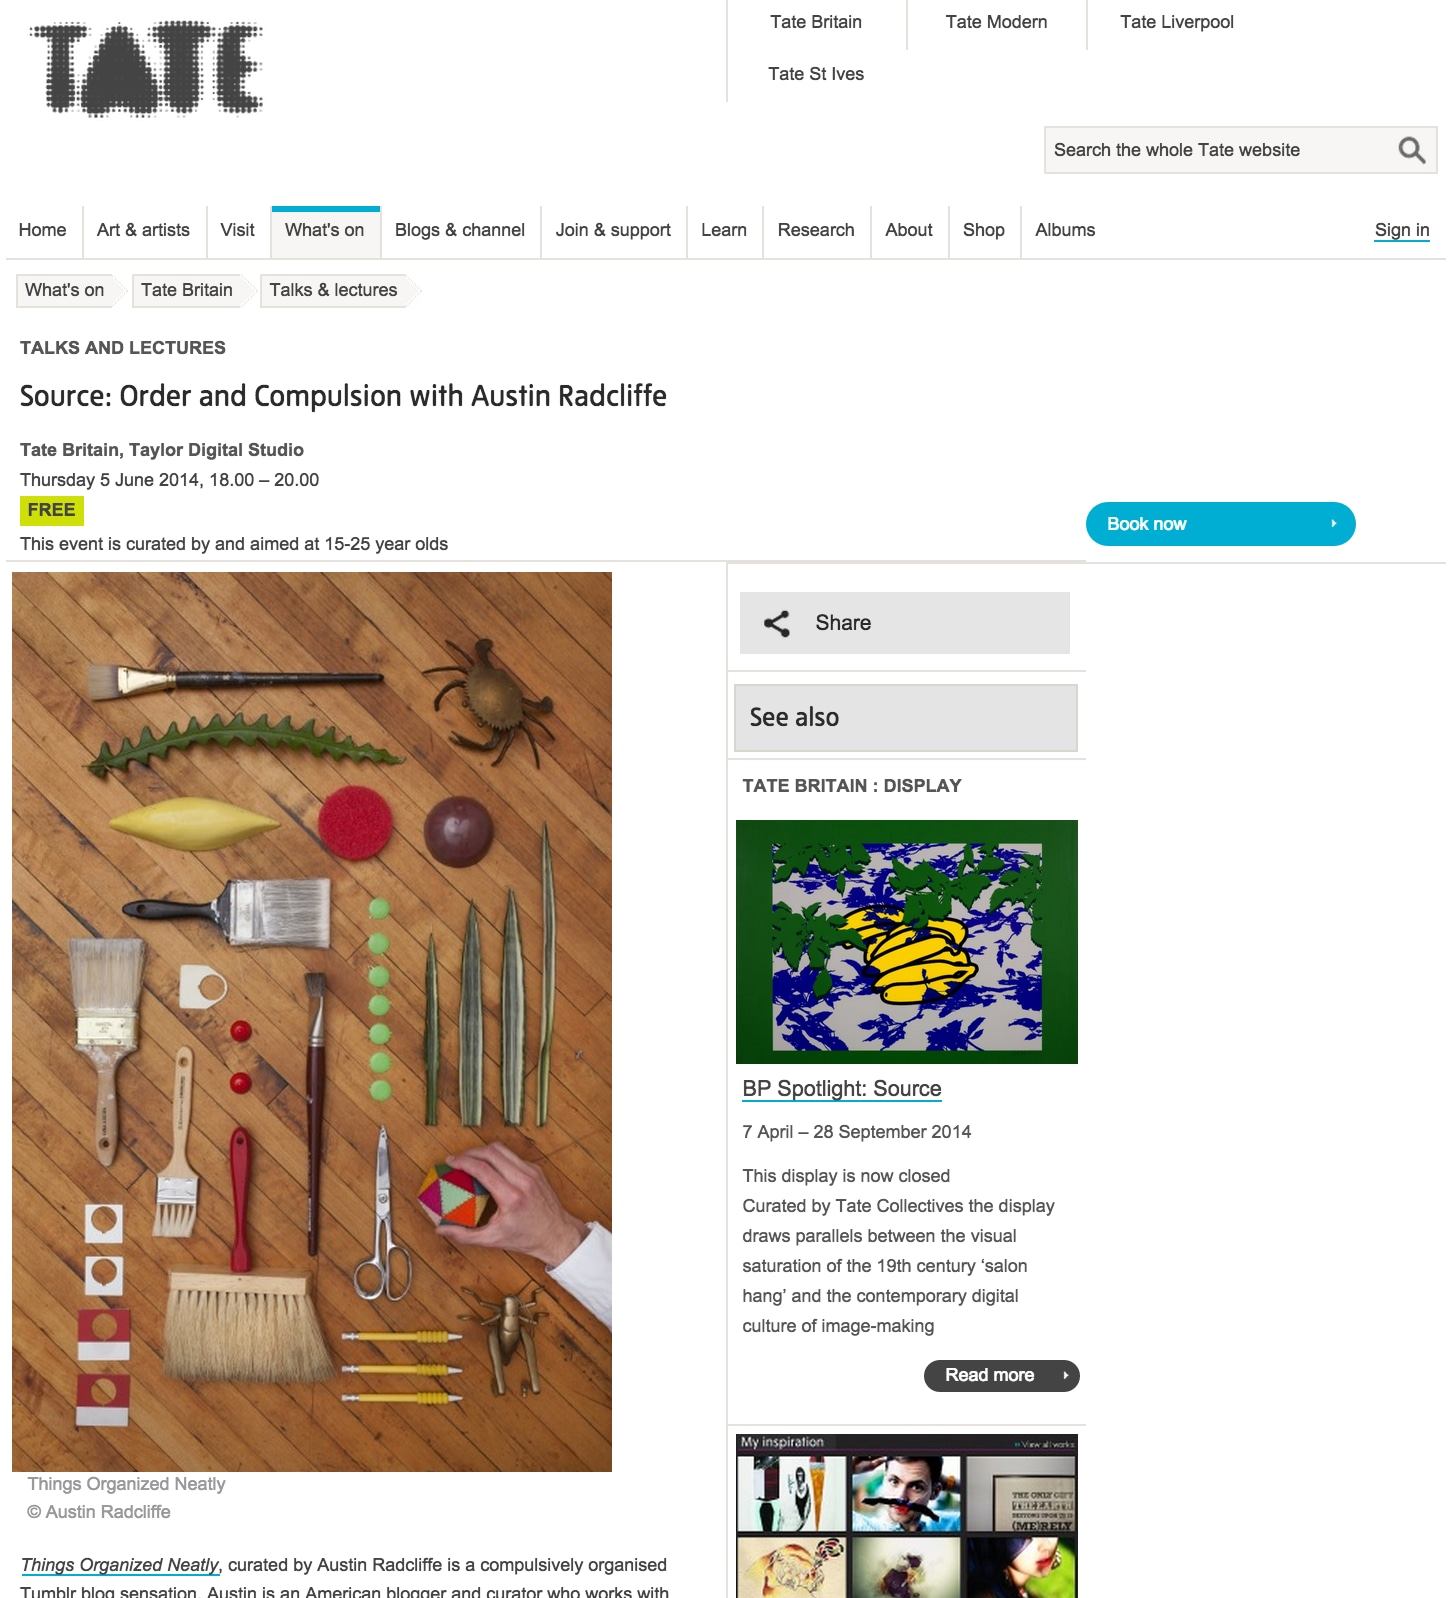 Tate Collectives